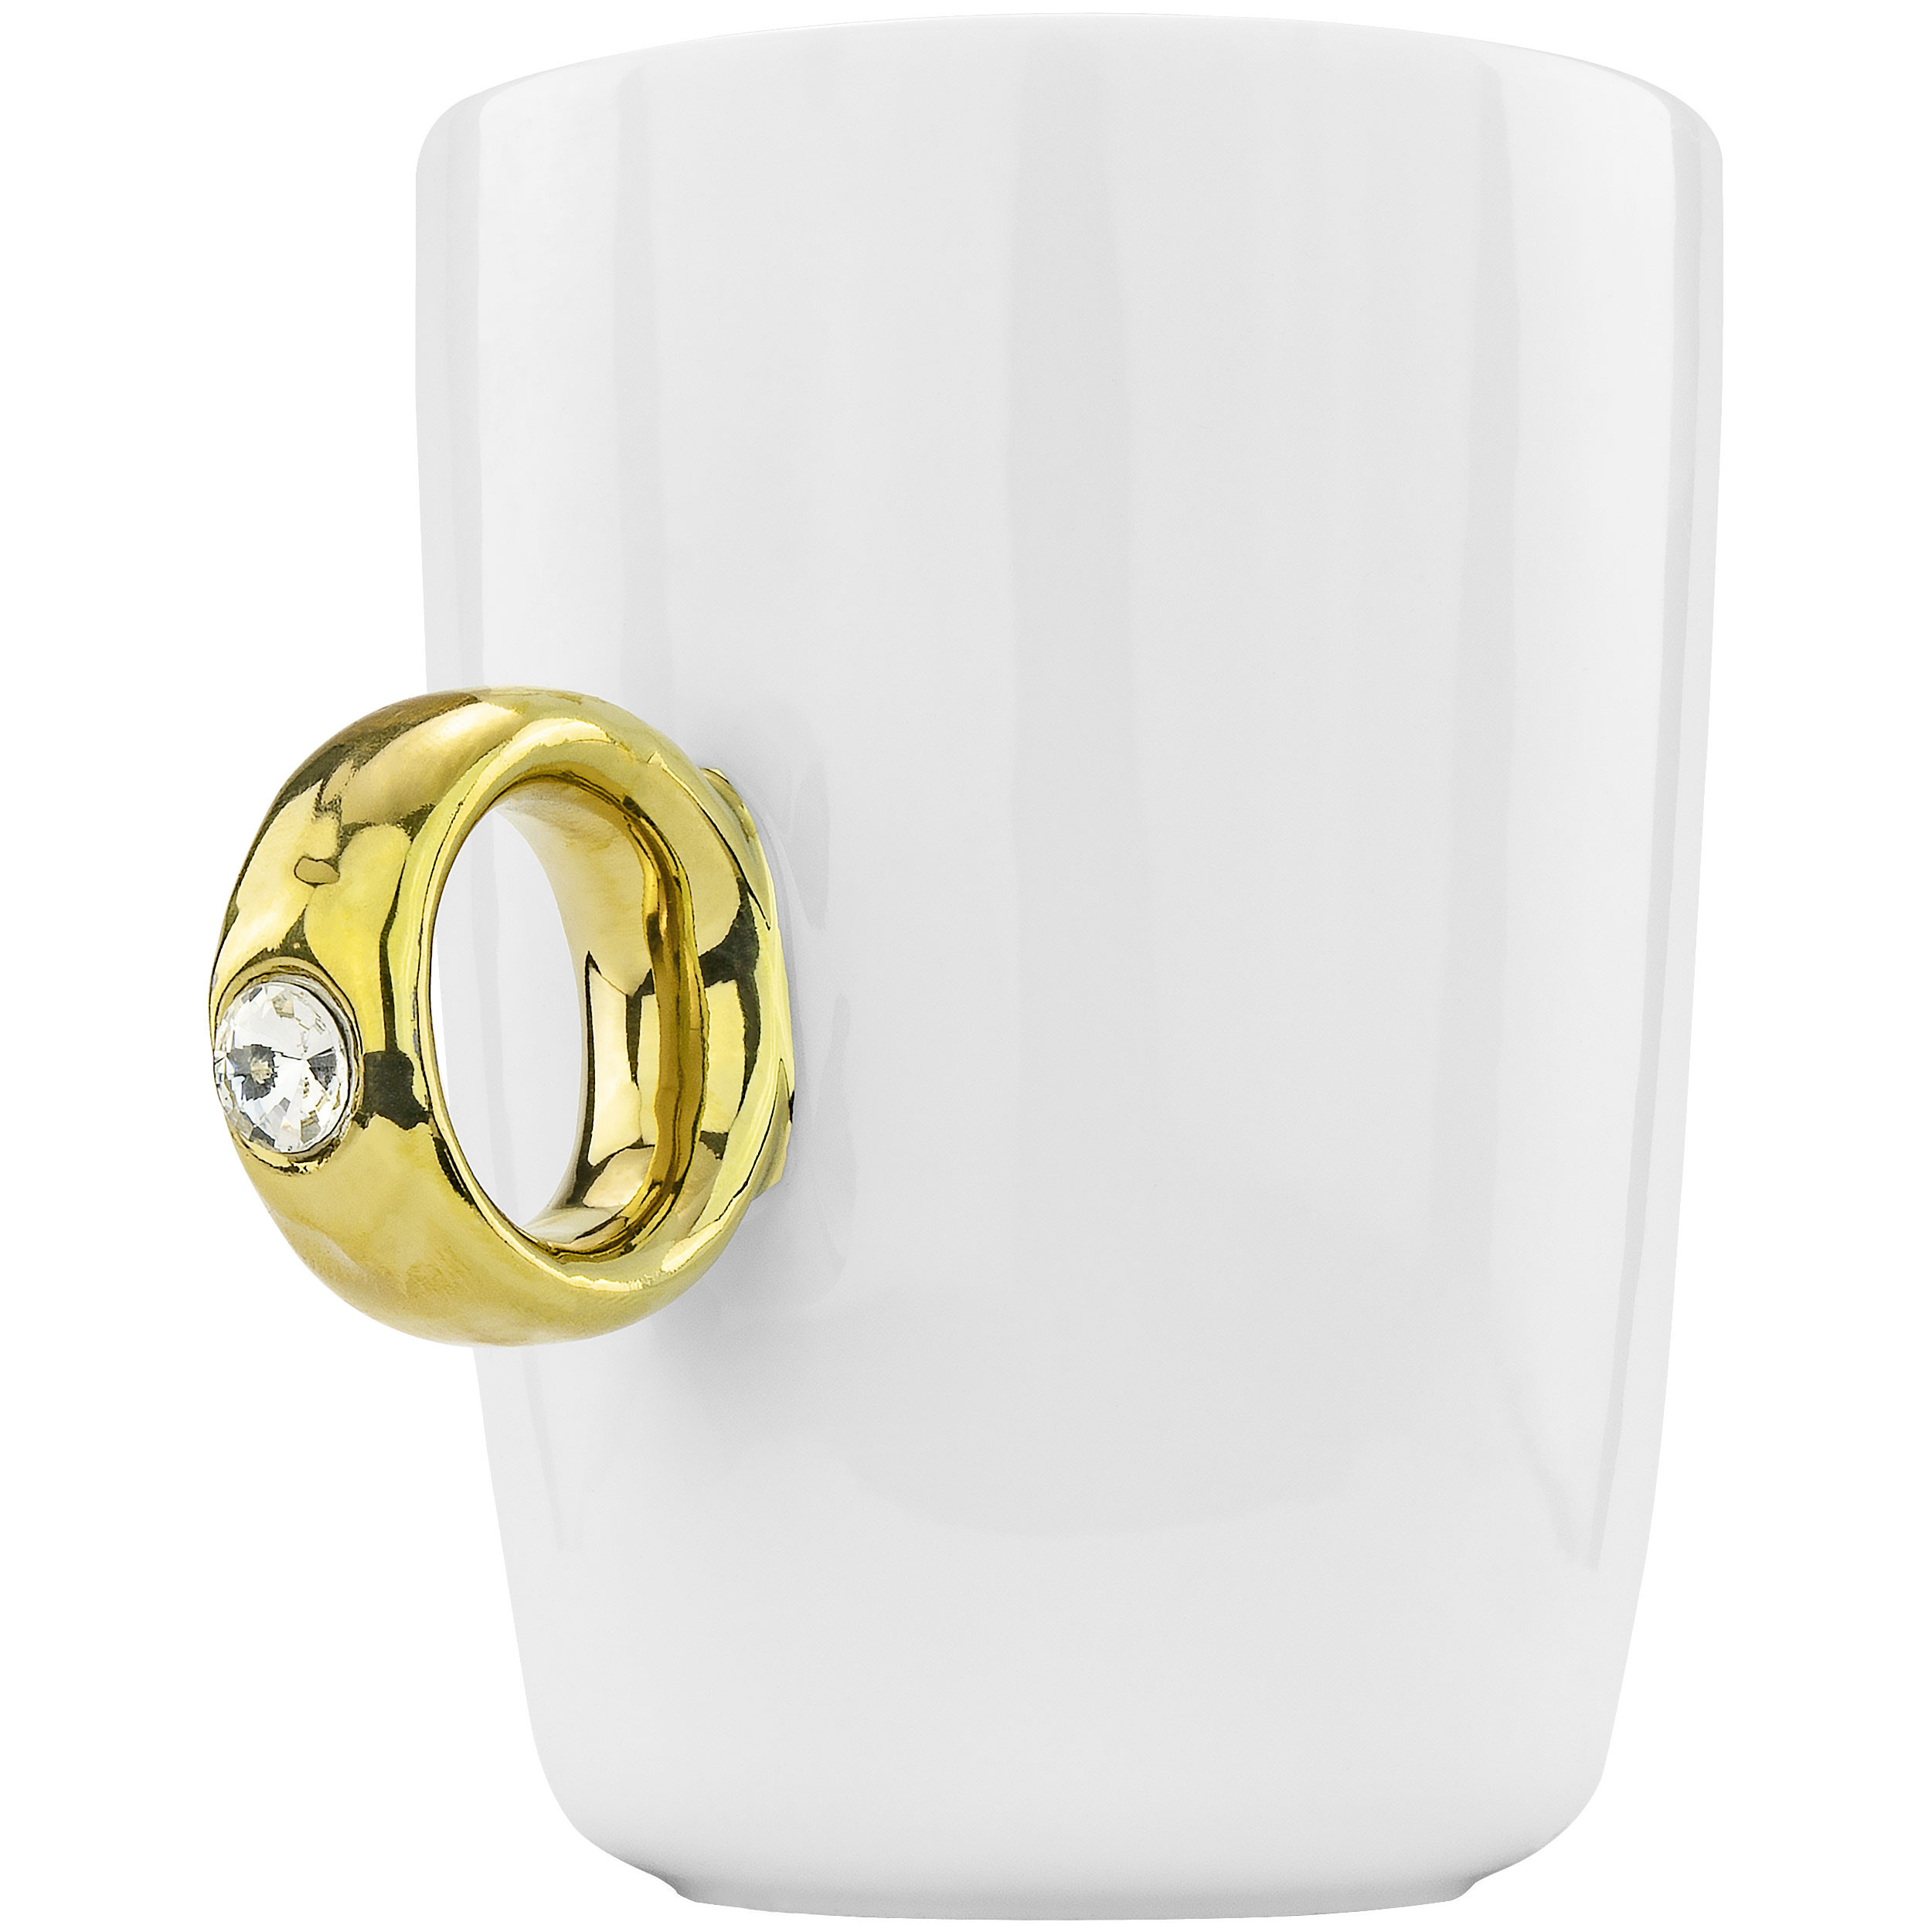 Fairly Odd Novelties Engagement 2 Carat Solitaire Ring Novelty Gag Gift Mug, Gold